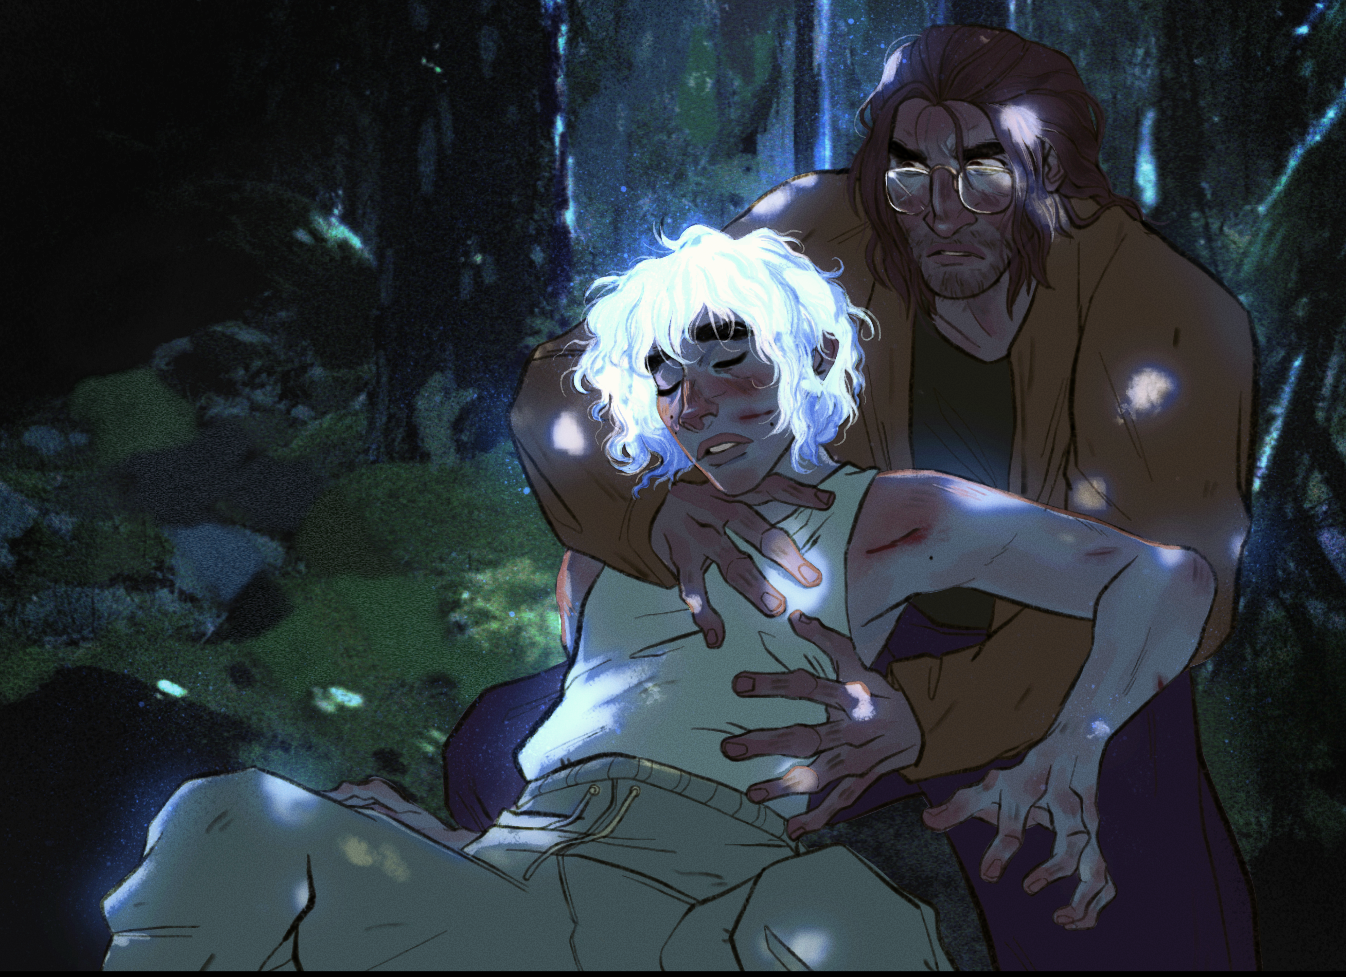 In a dimly lit forest speckled with moonlight, a young man with glowing white hair and sharp cuts against his cheeks where tree branches have whipped past laying half-unconscious in a daze, holding him is a scruffy looking man with jaw-length hair and gla